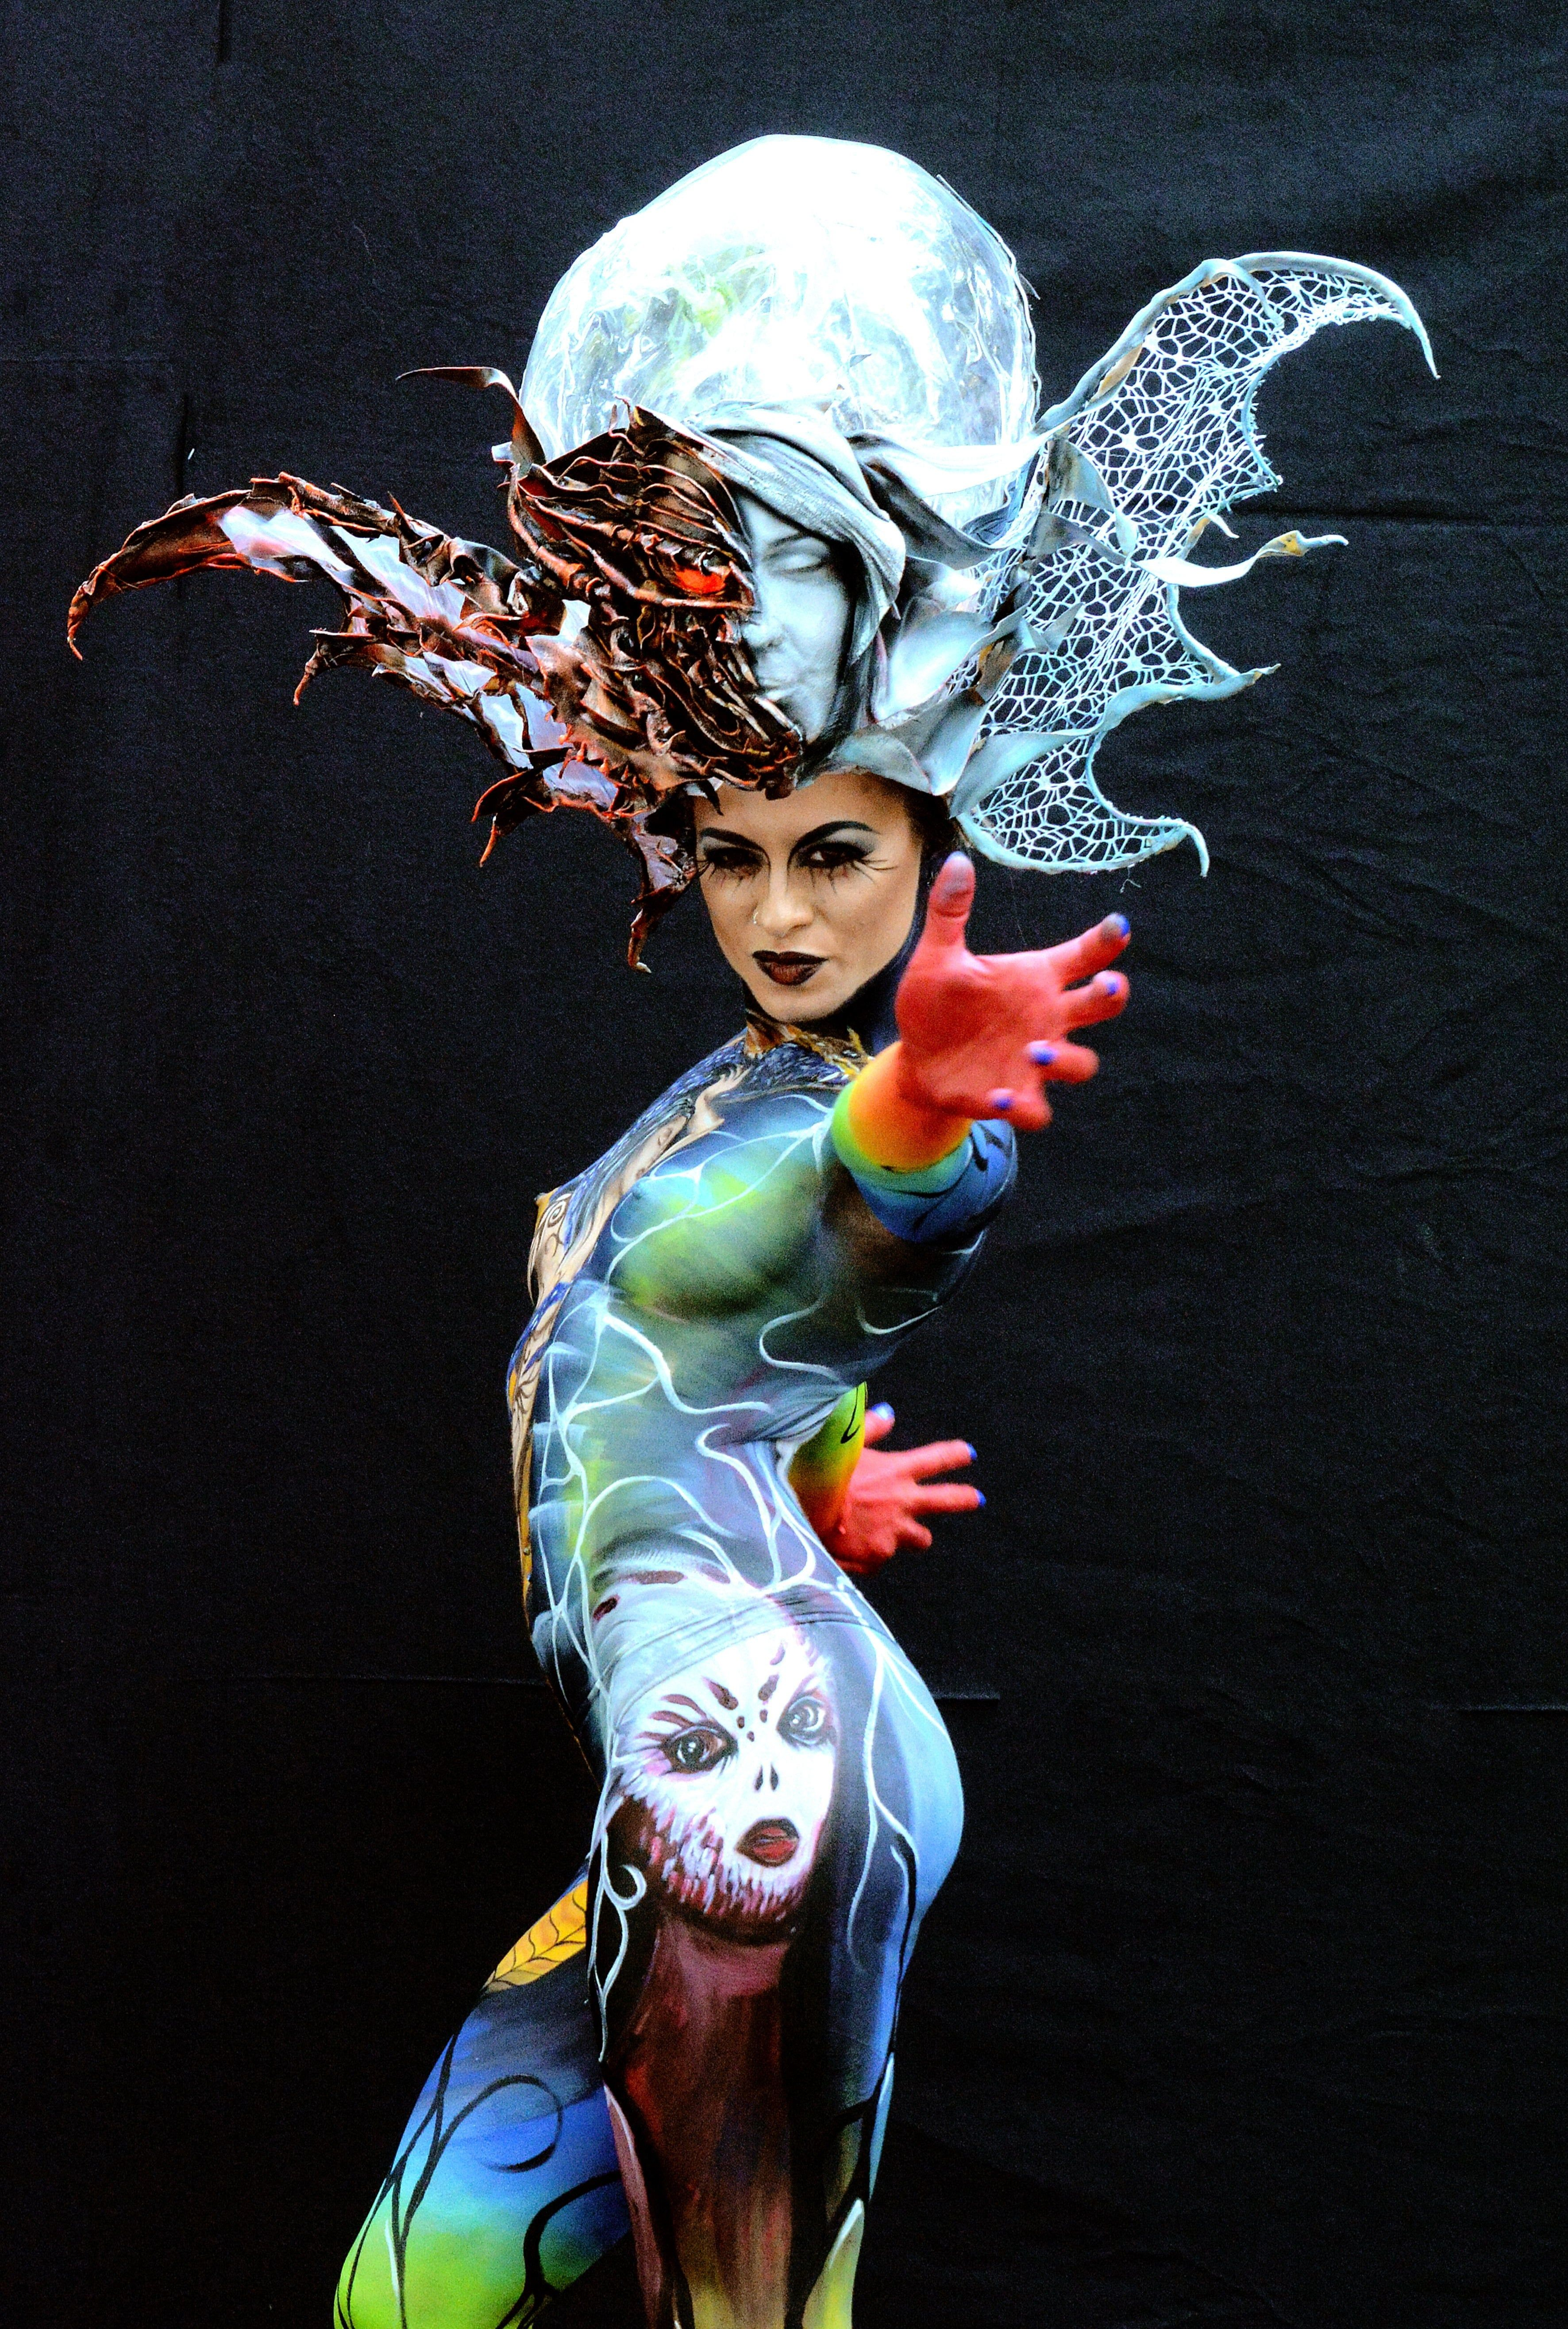 Body Painting Festival In Austria In Pictures Body Painting Festival Body Art Painting Body Painting